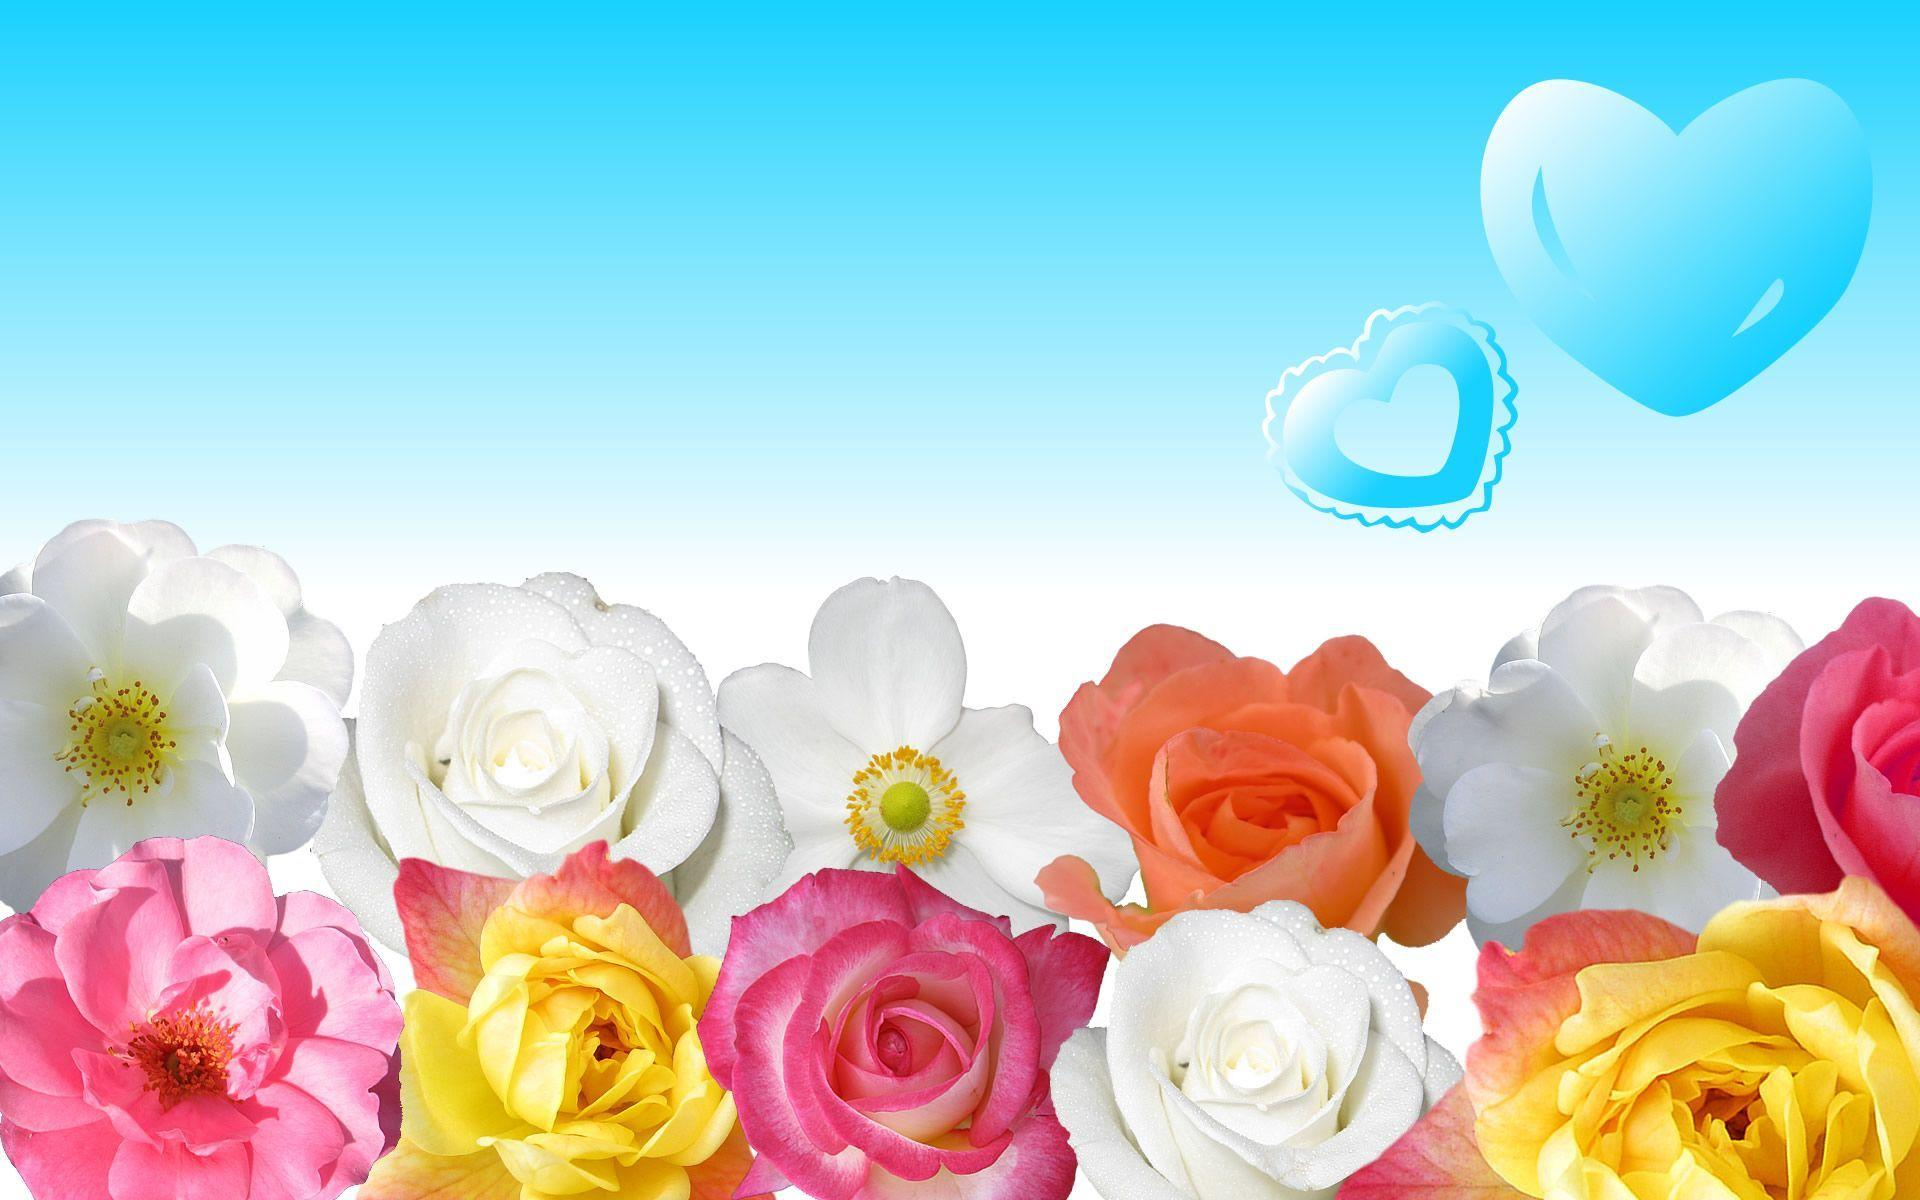 Flower Pictures Wallpapers - Wallpaper Cave